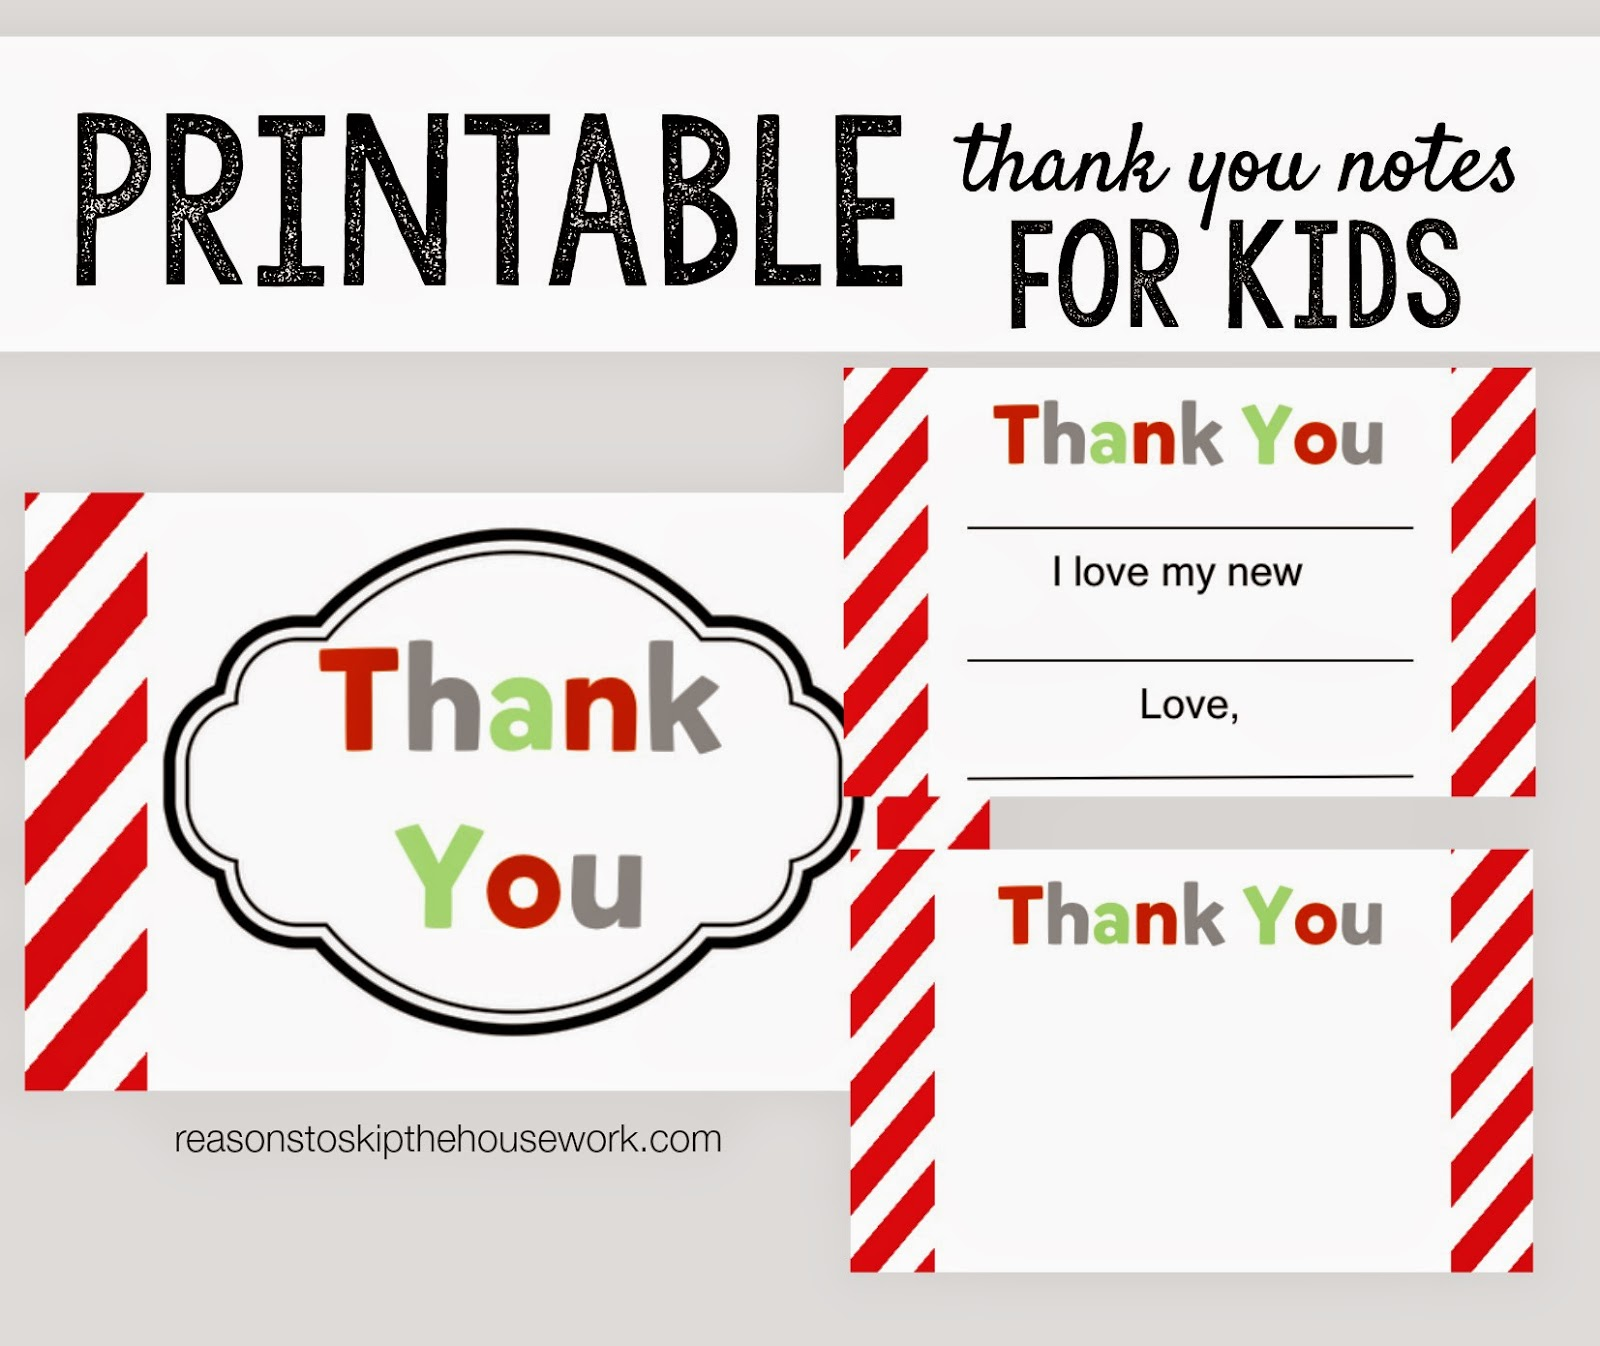 santa printable thank you note walking on sunshine reasons to skip the housework